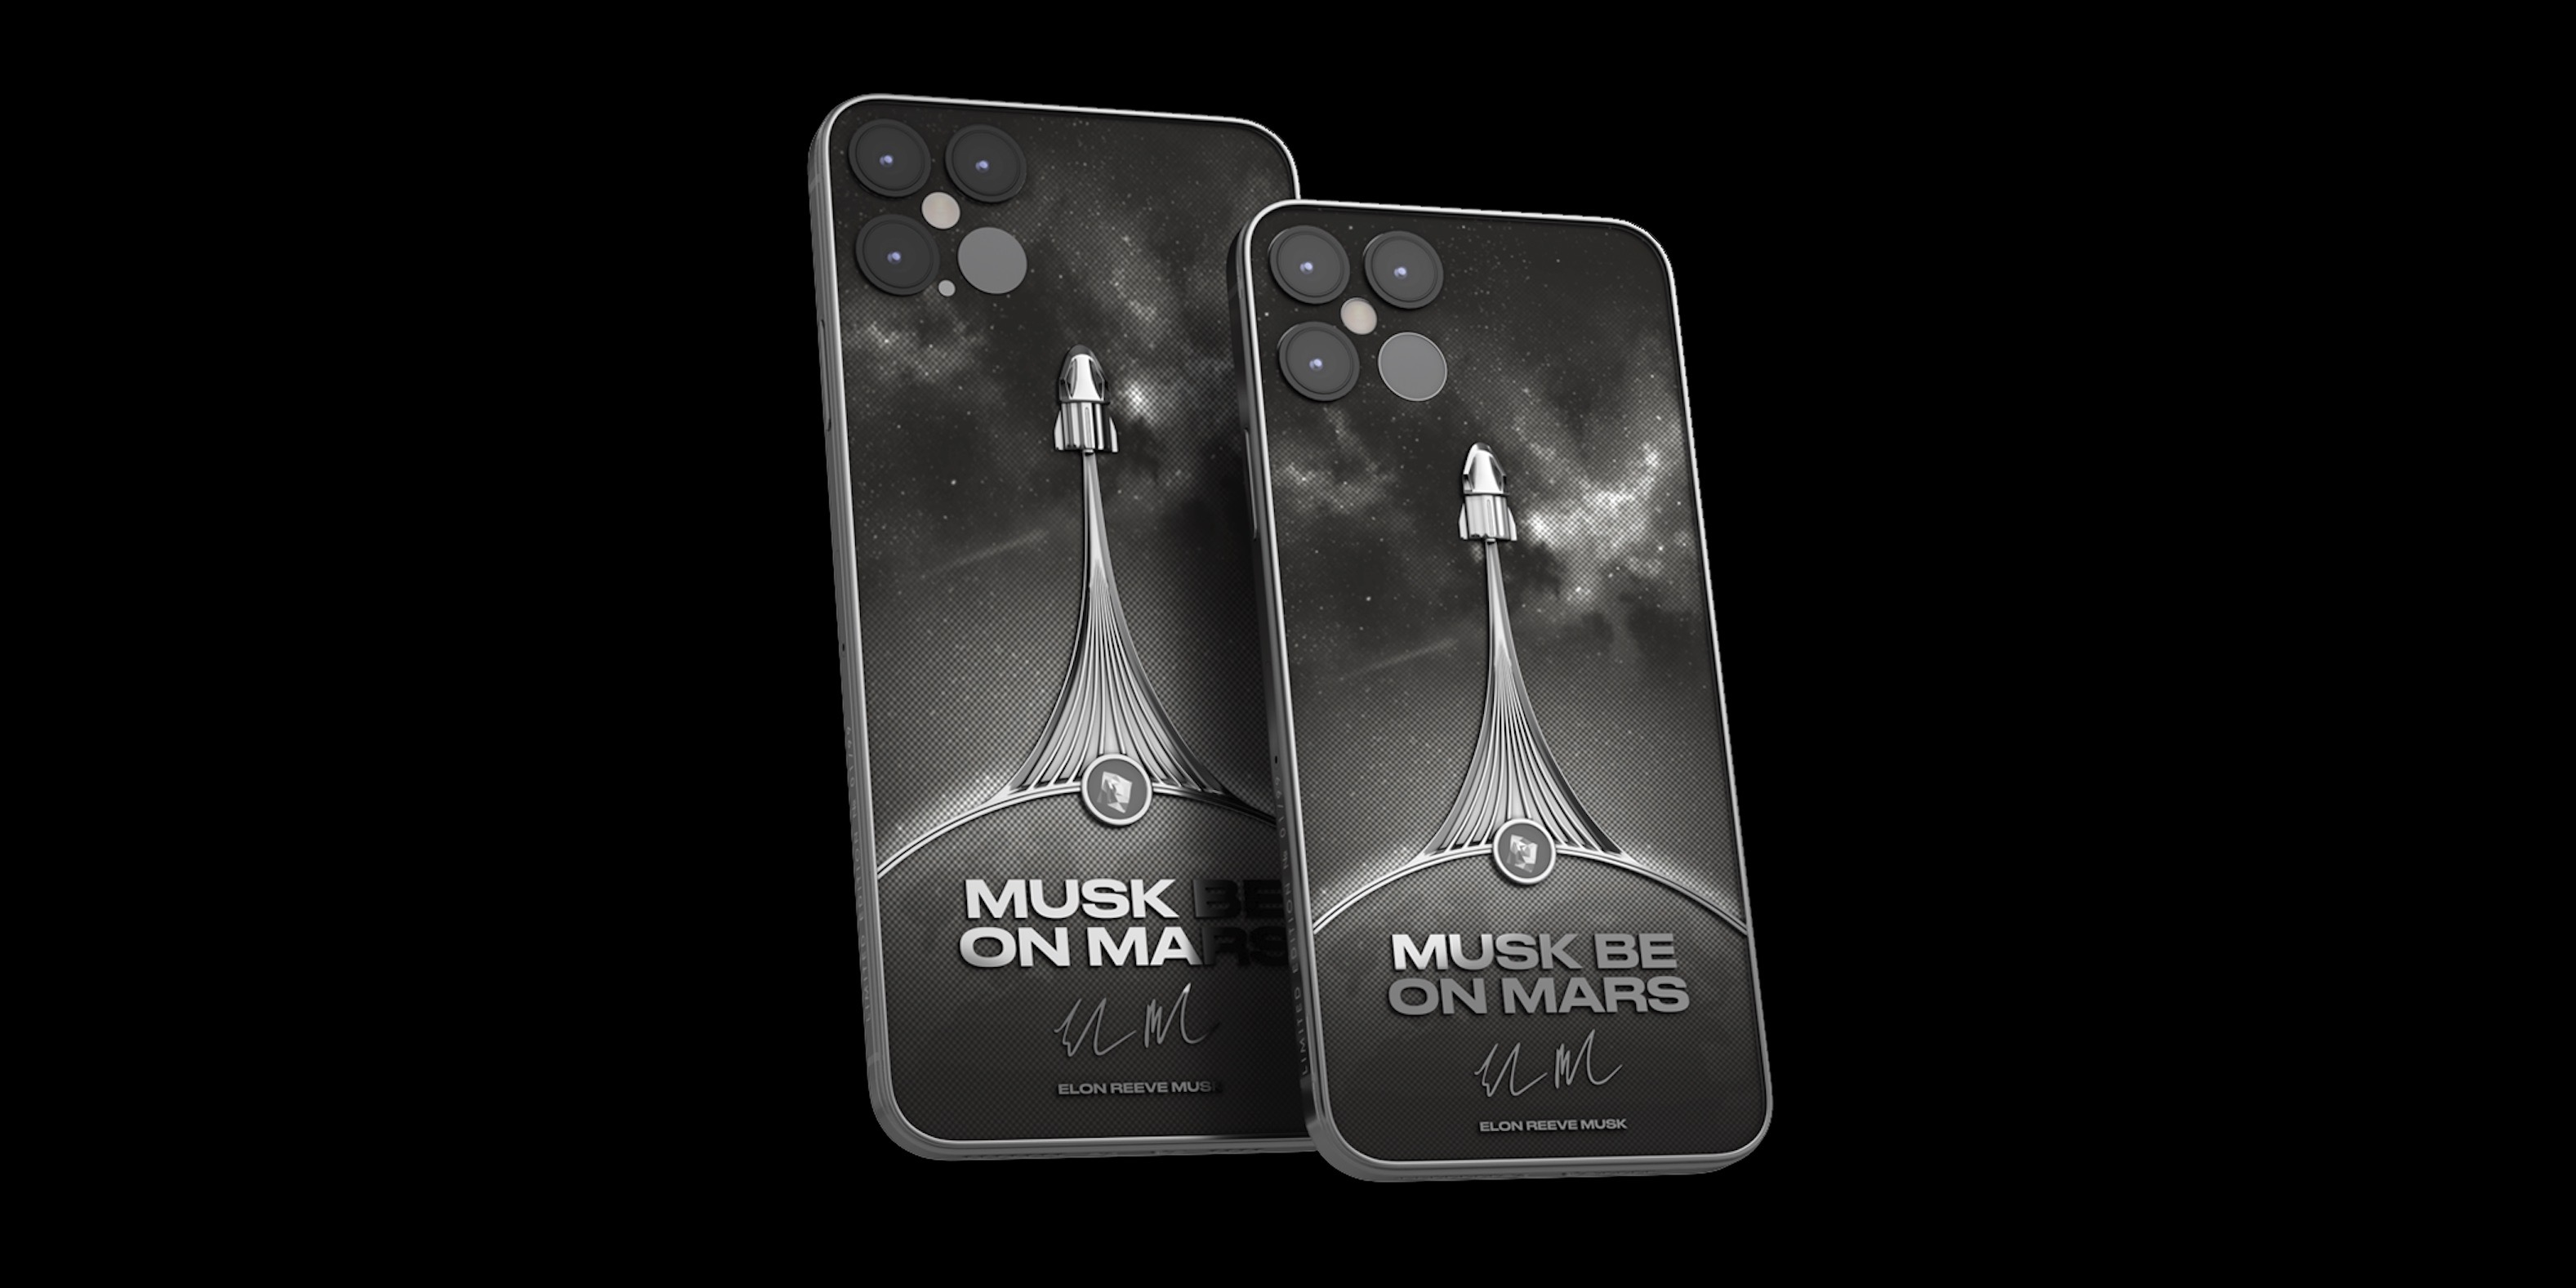 Musk be on Mars: Luxury brand taking pre-orders for $5,000 SpaceX iPhone 12 Pro concept